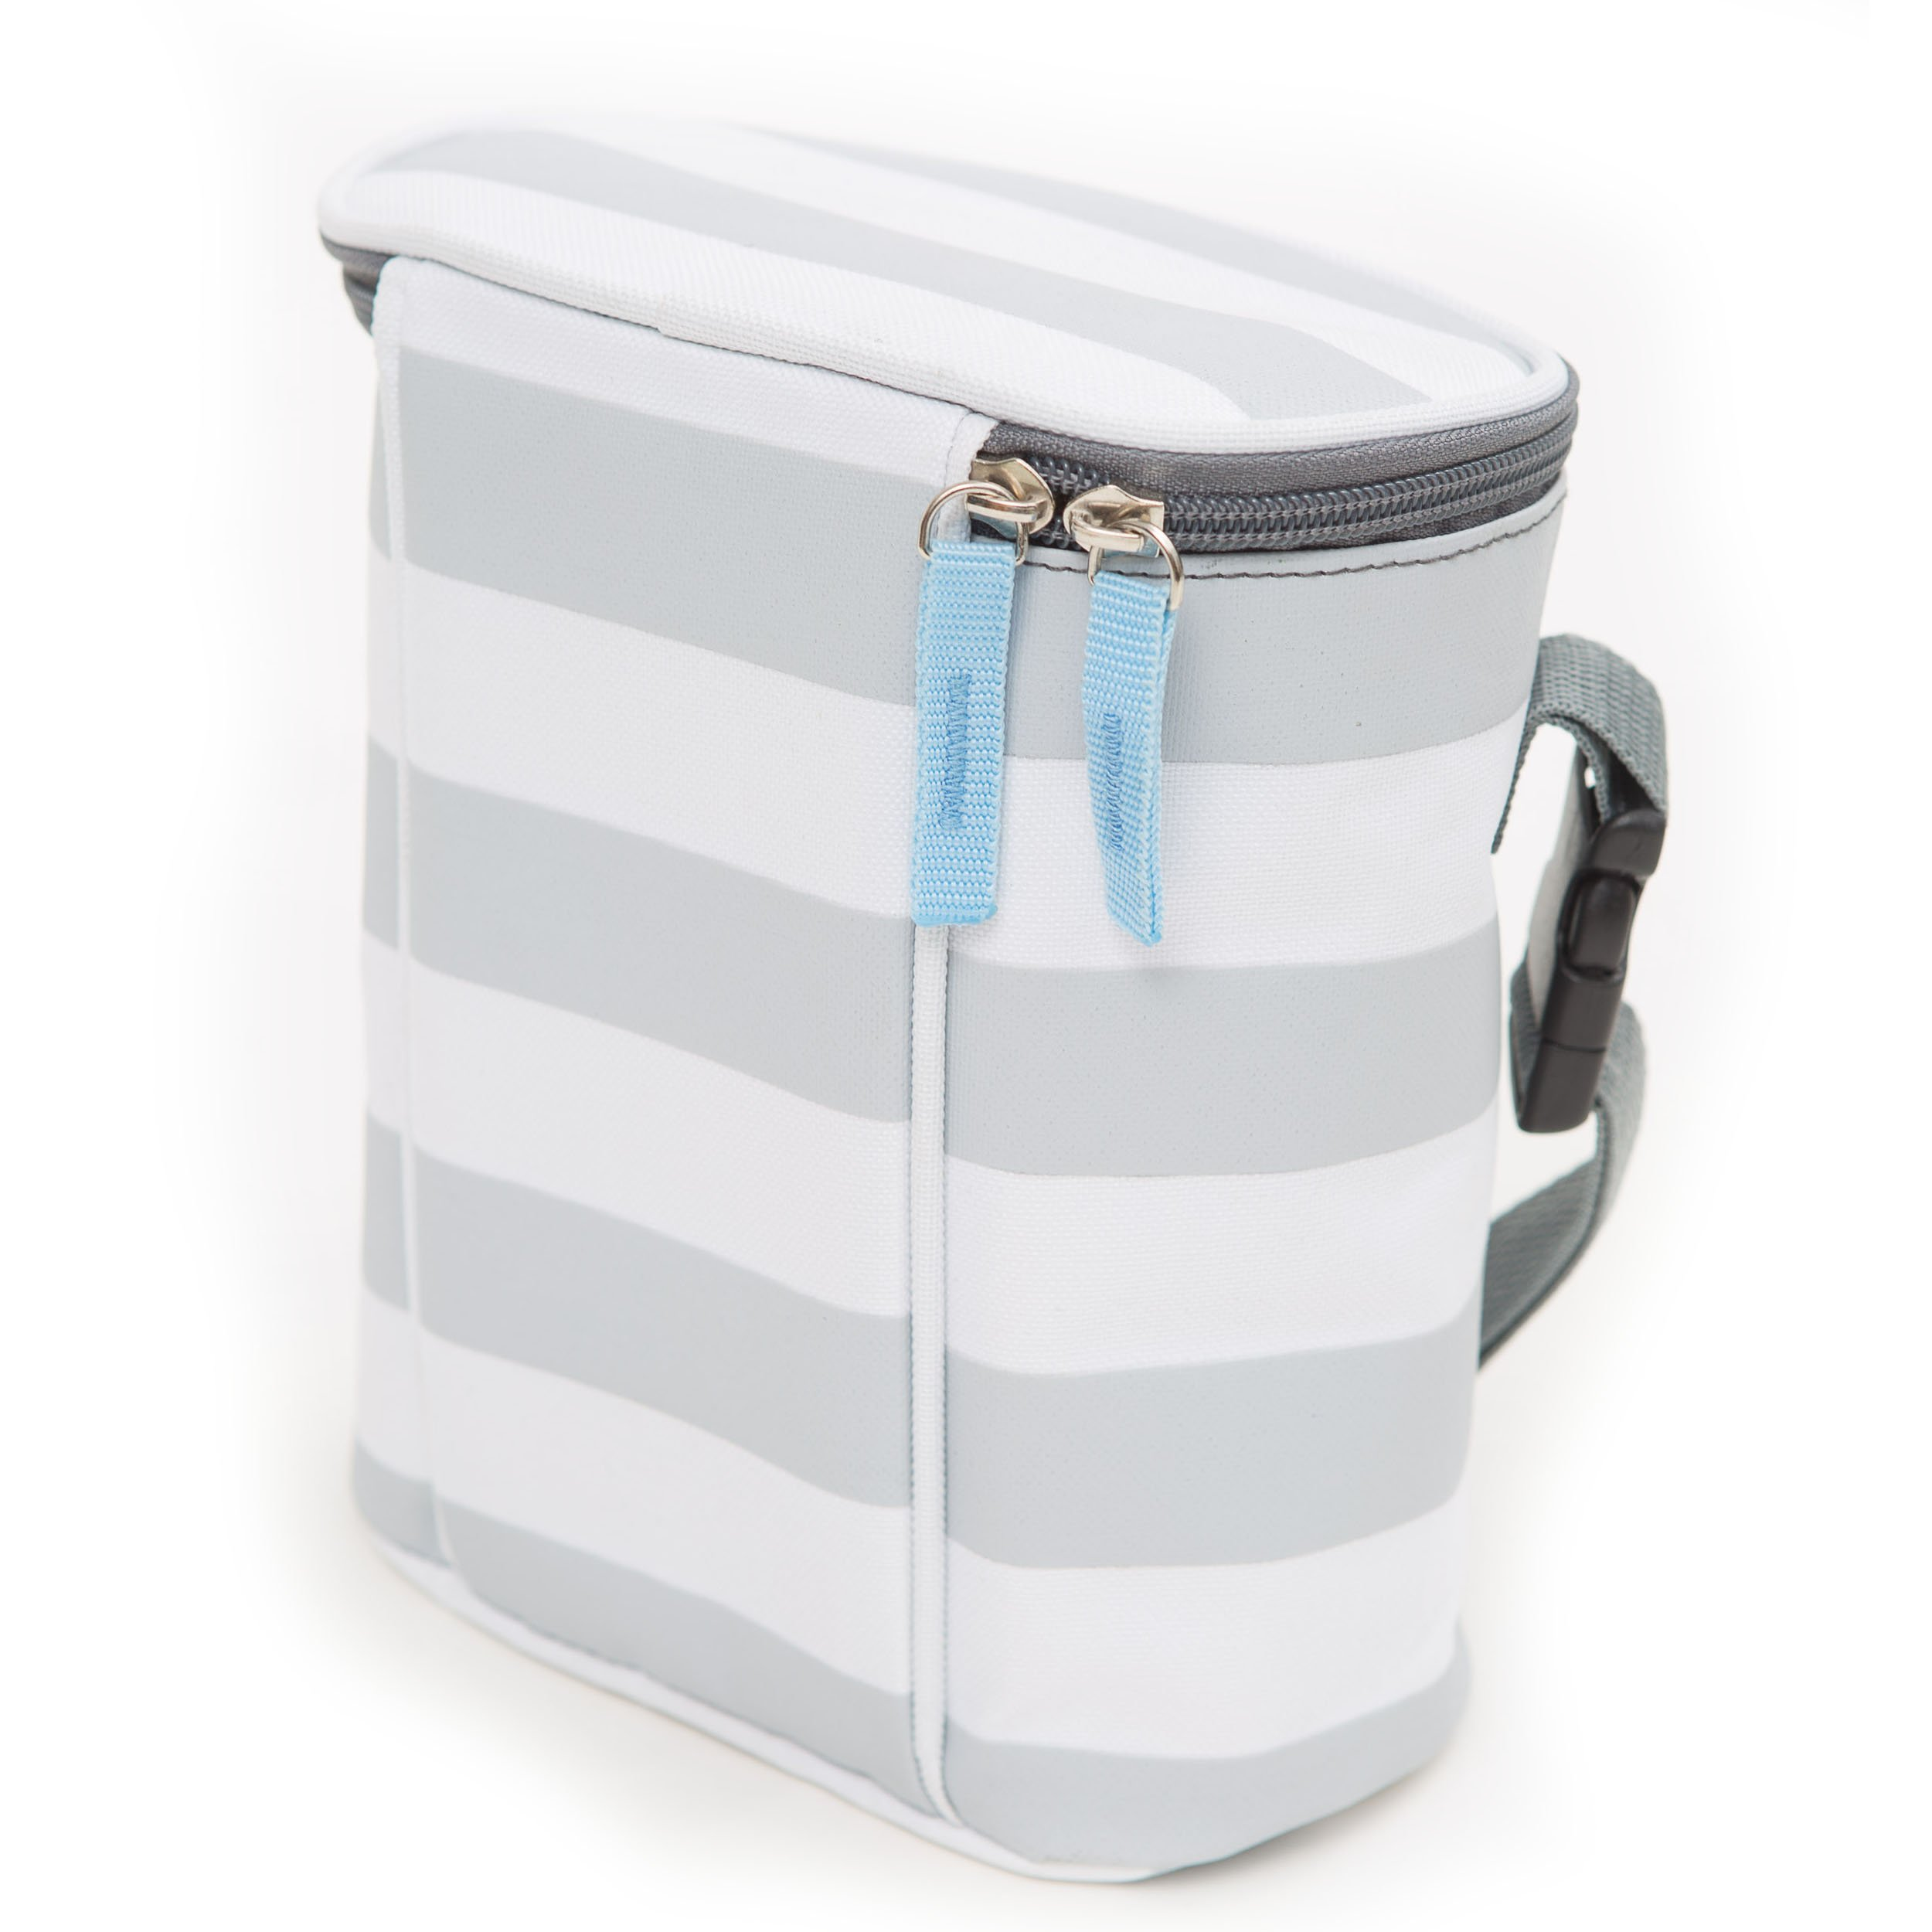 Bula Baby Bottle Cooler Bag for Breast Milk - Insulated Tote Bag Keep 2 Bottles Warm or Cool - Grey Stripe Ideal Gift